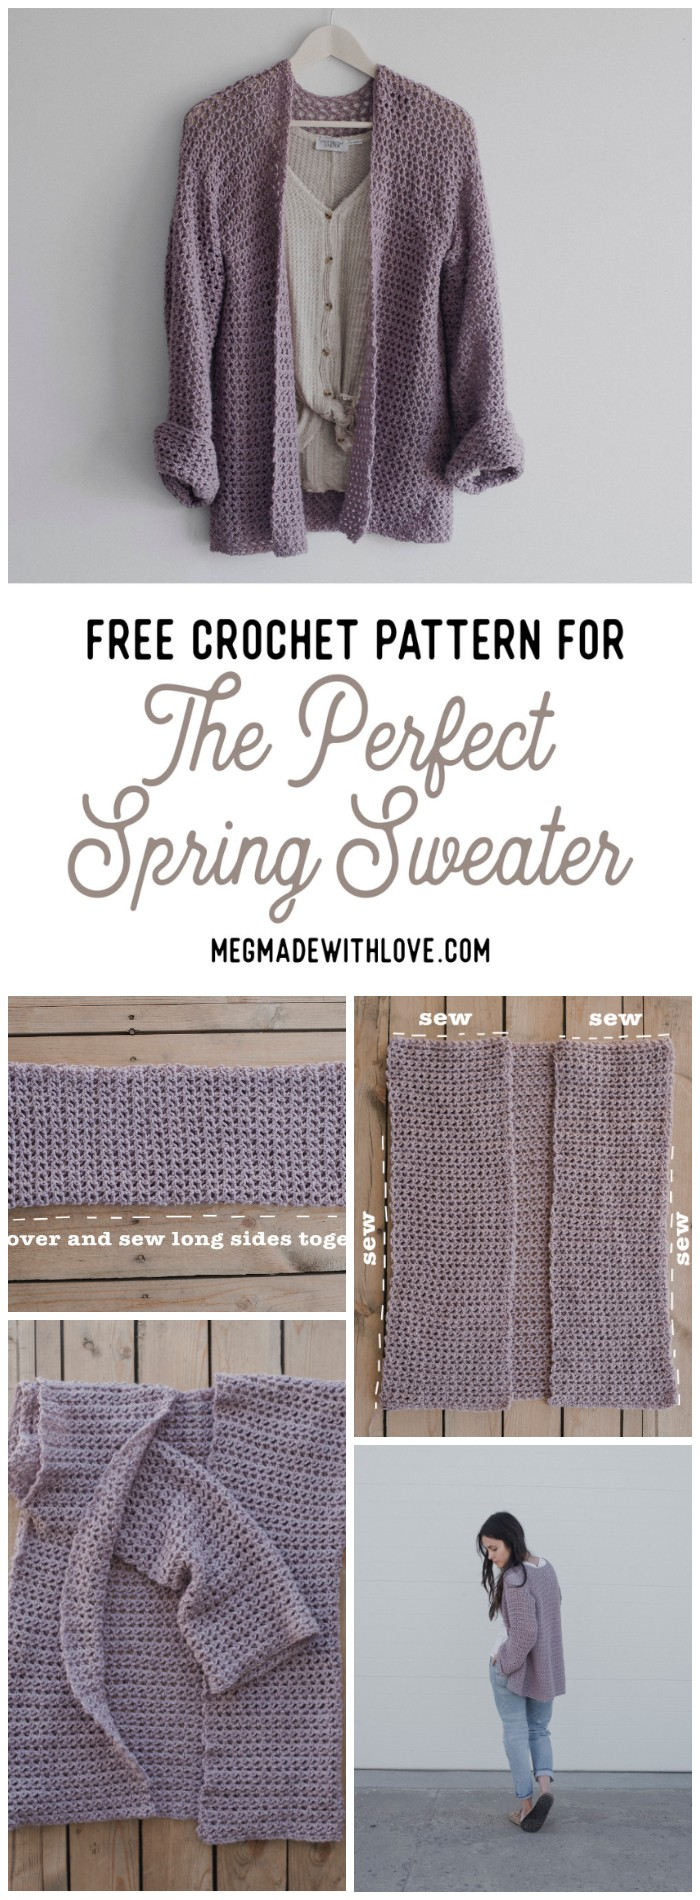 Free Crochet Pattern for The Perfect Spring Sweater